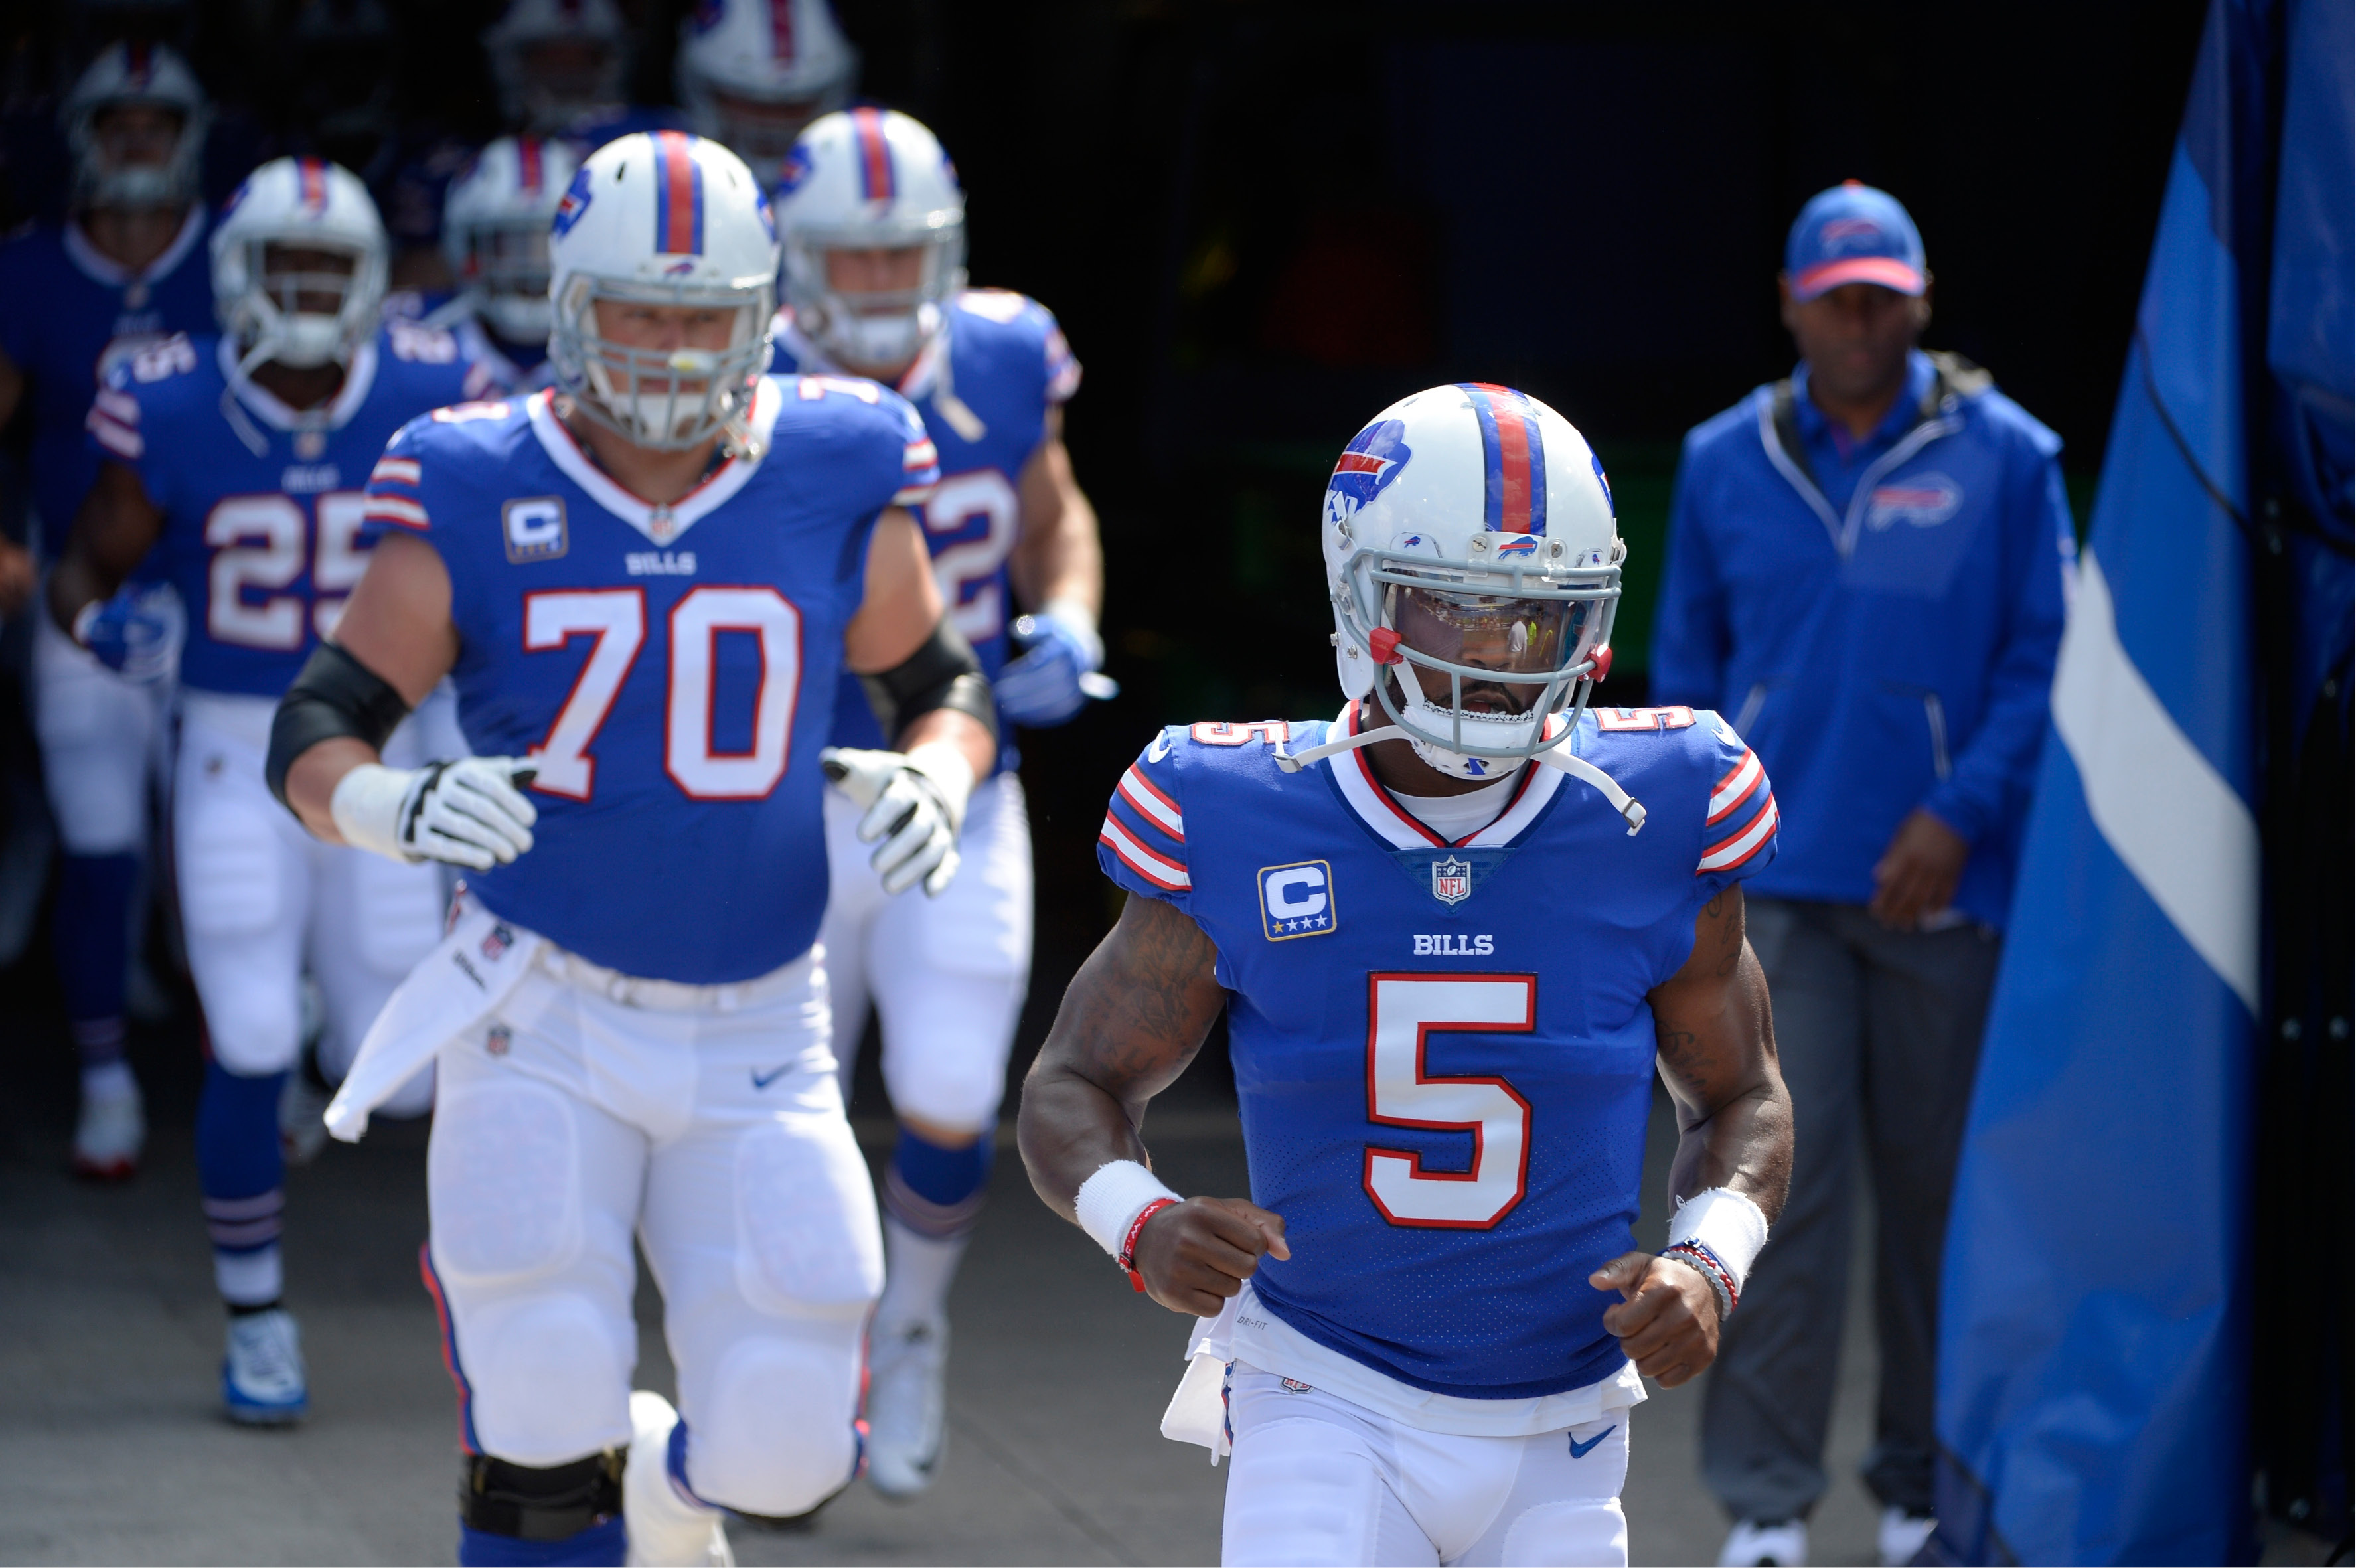 Buffalo Bills quarterback Tyrod Taylor (5) takes the field with teammates before an NFL football game against the New York Jets Sunday, Sept. 10, 2017, in Orchard Park, N.Y. (AP Photo/Adrian Kraus)